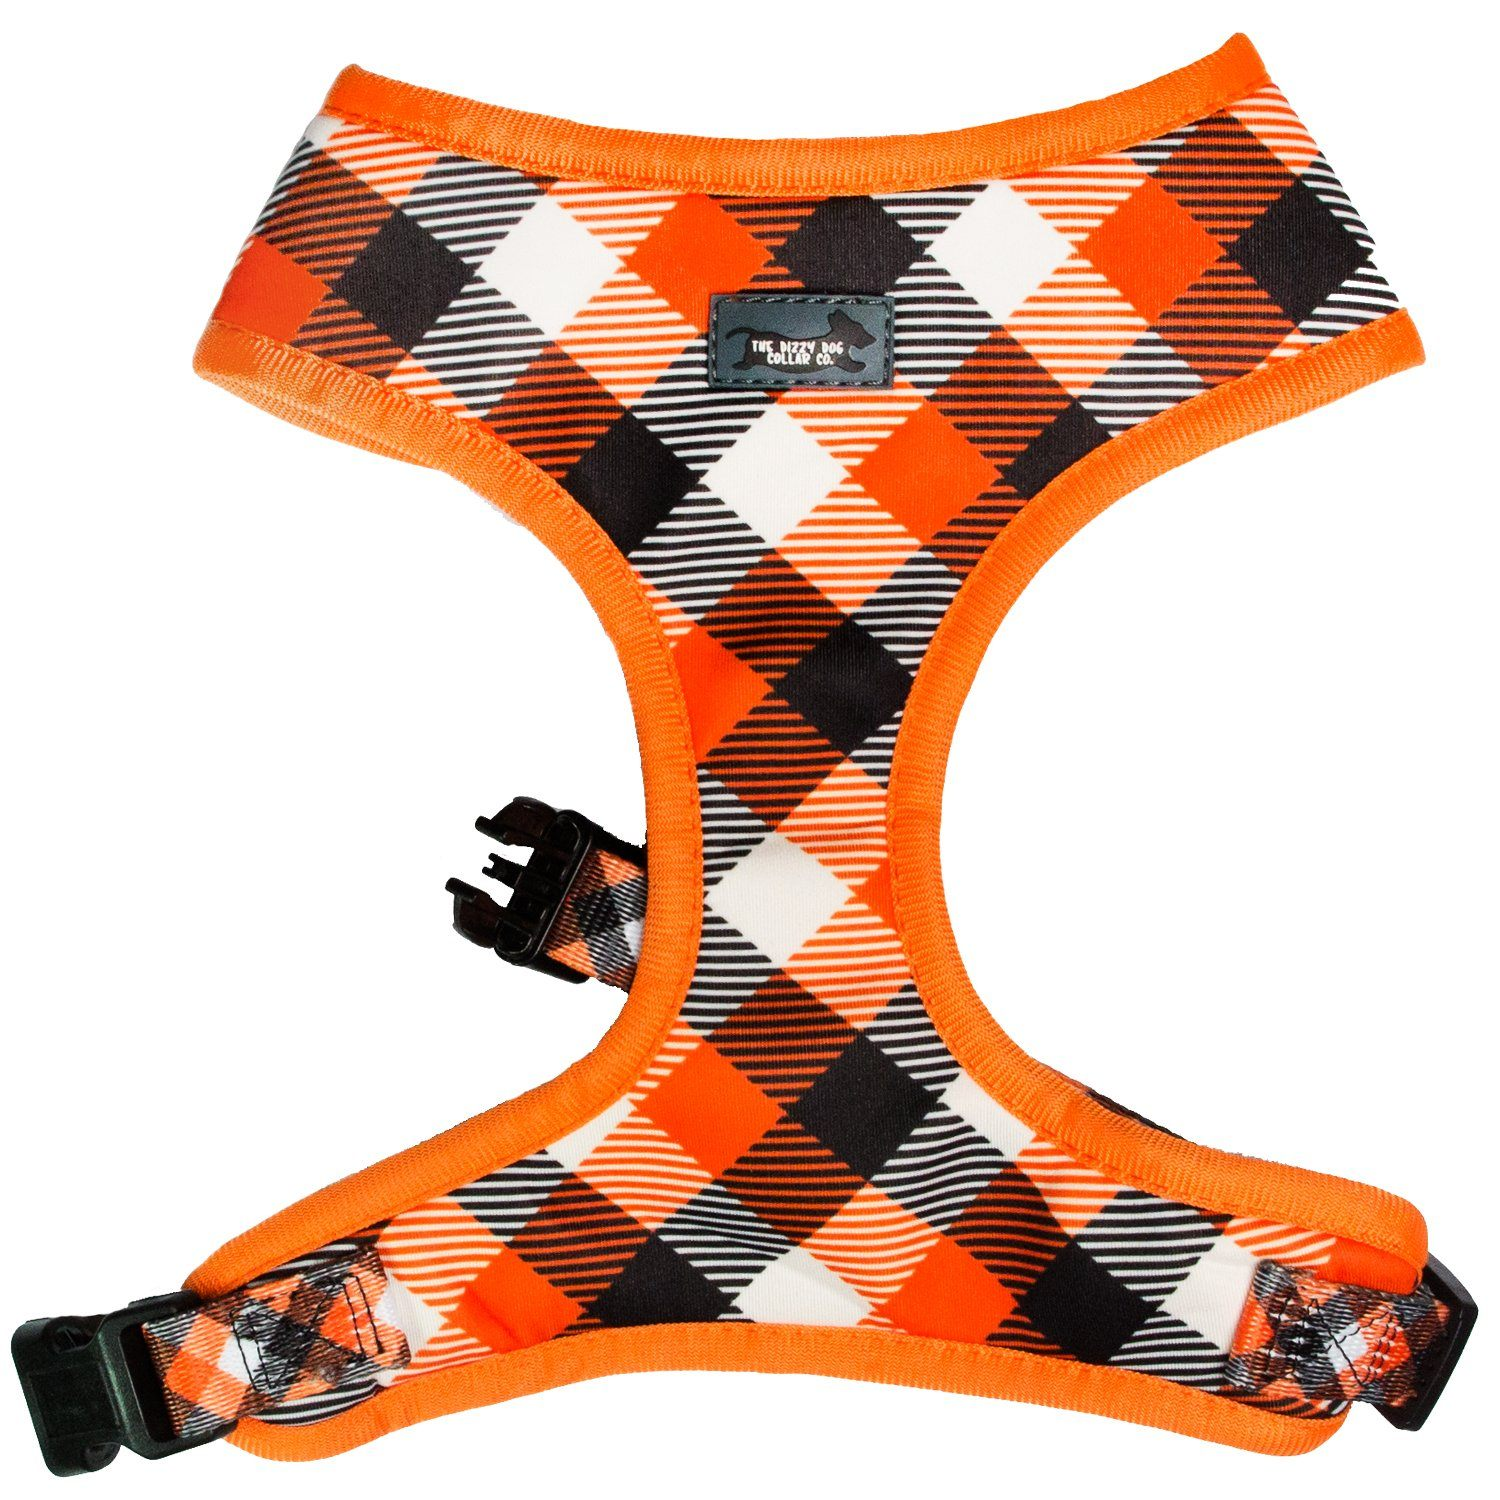 small dog harness, this is the best small dog harness, plaid dog harness, bright orange plaid dog harness perfect for the fall or all year round